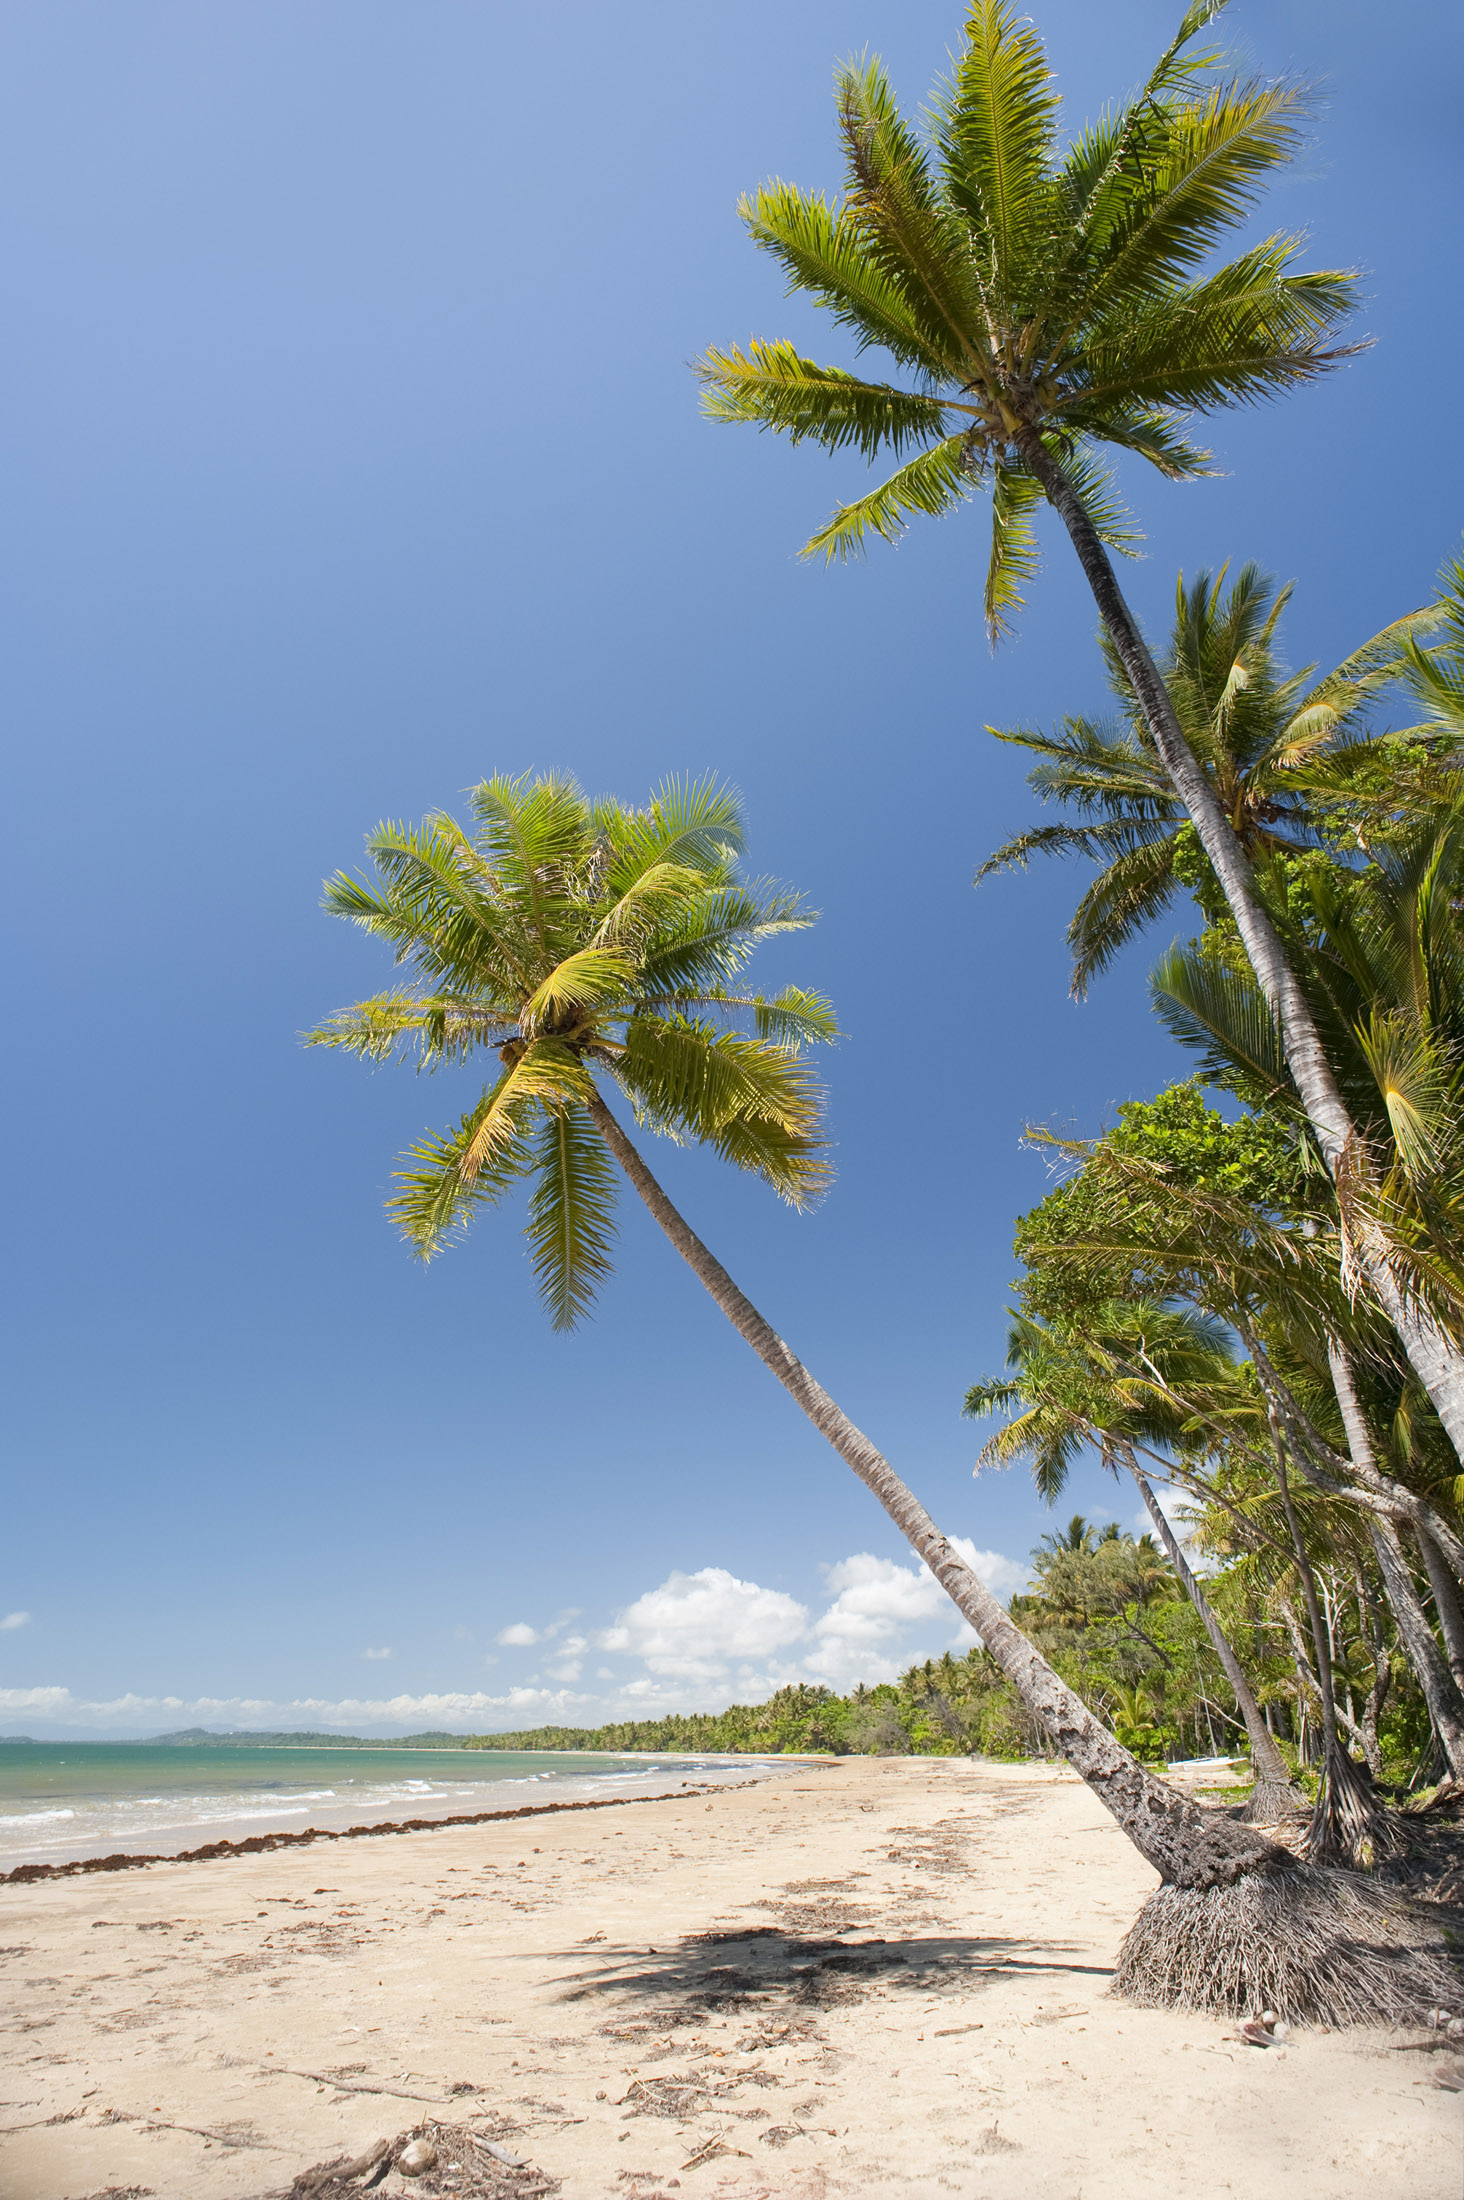 lines of coconut palms growing on the side of a tropical beach